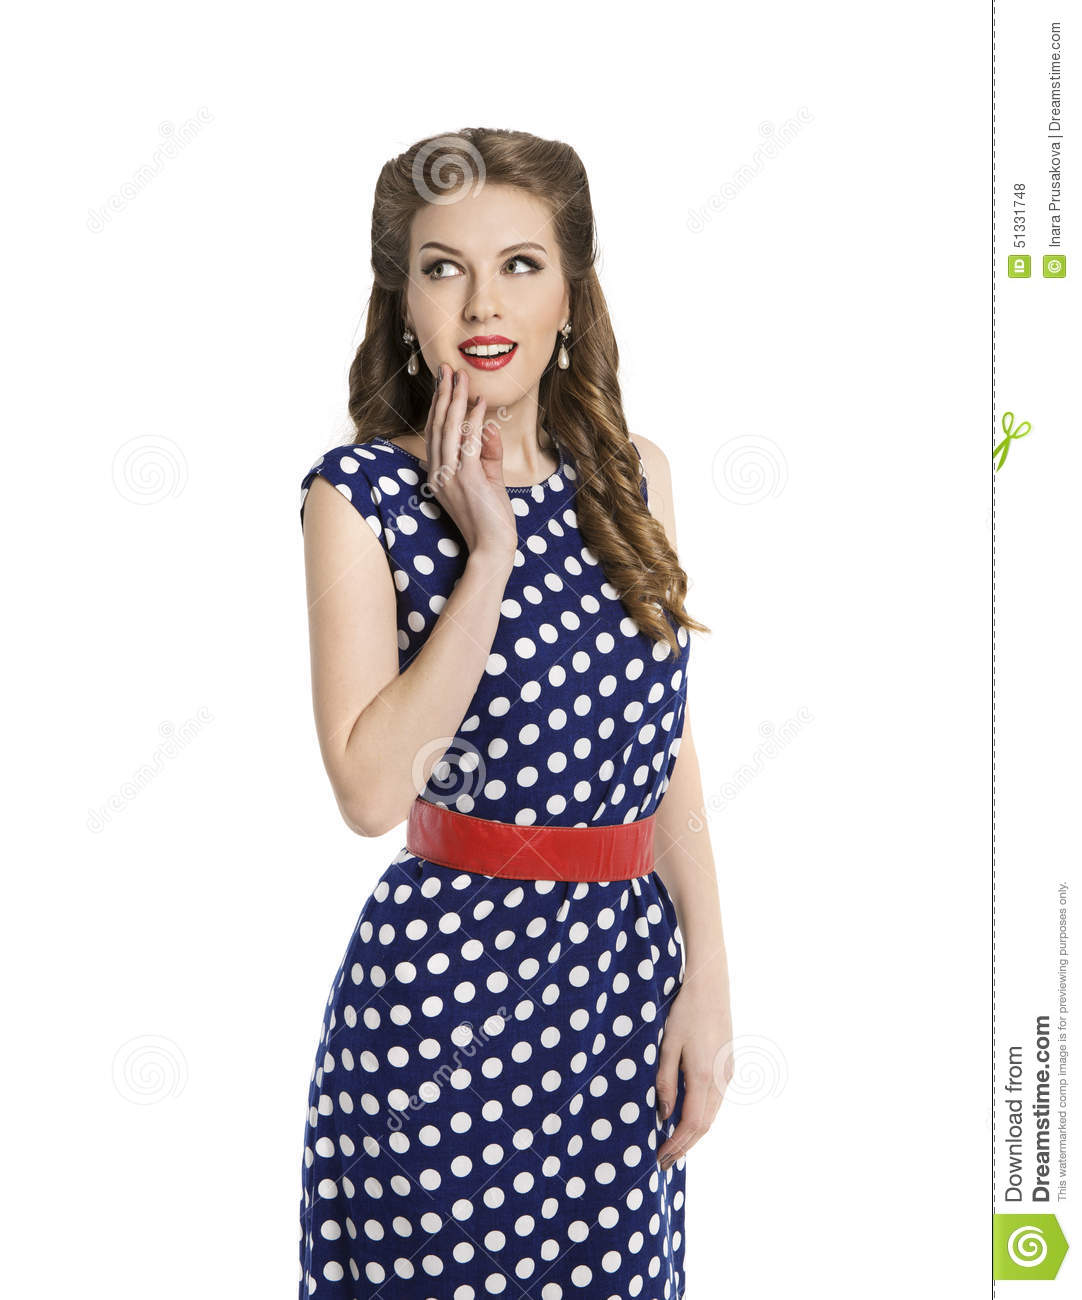 woman in polka dot dress retro girl pin up hair style beauty stock photo image of attractive. Black Bedroom Furniture Sets. Home Design Ideas